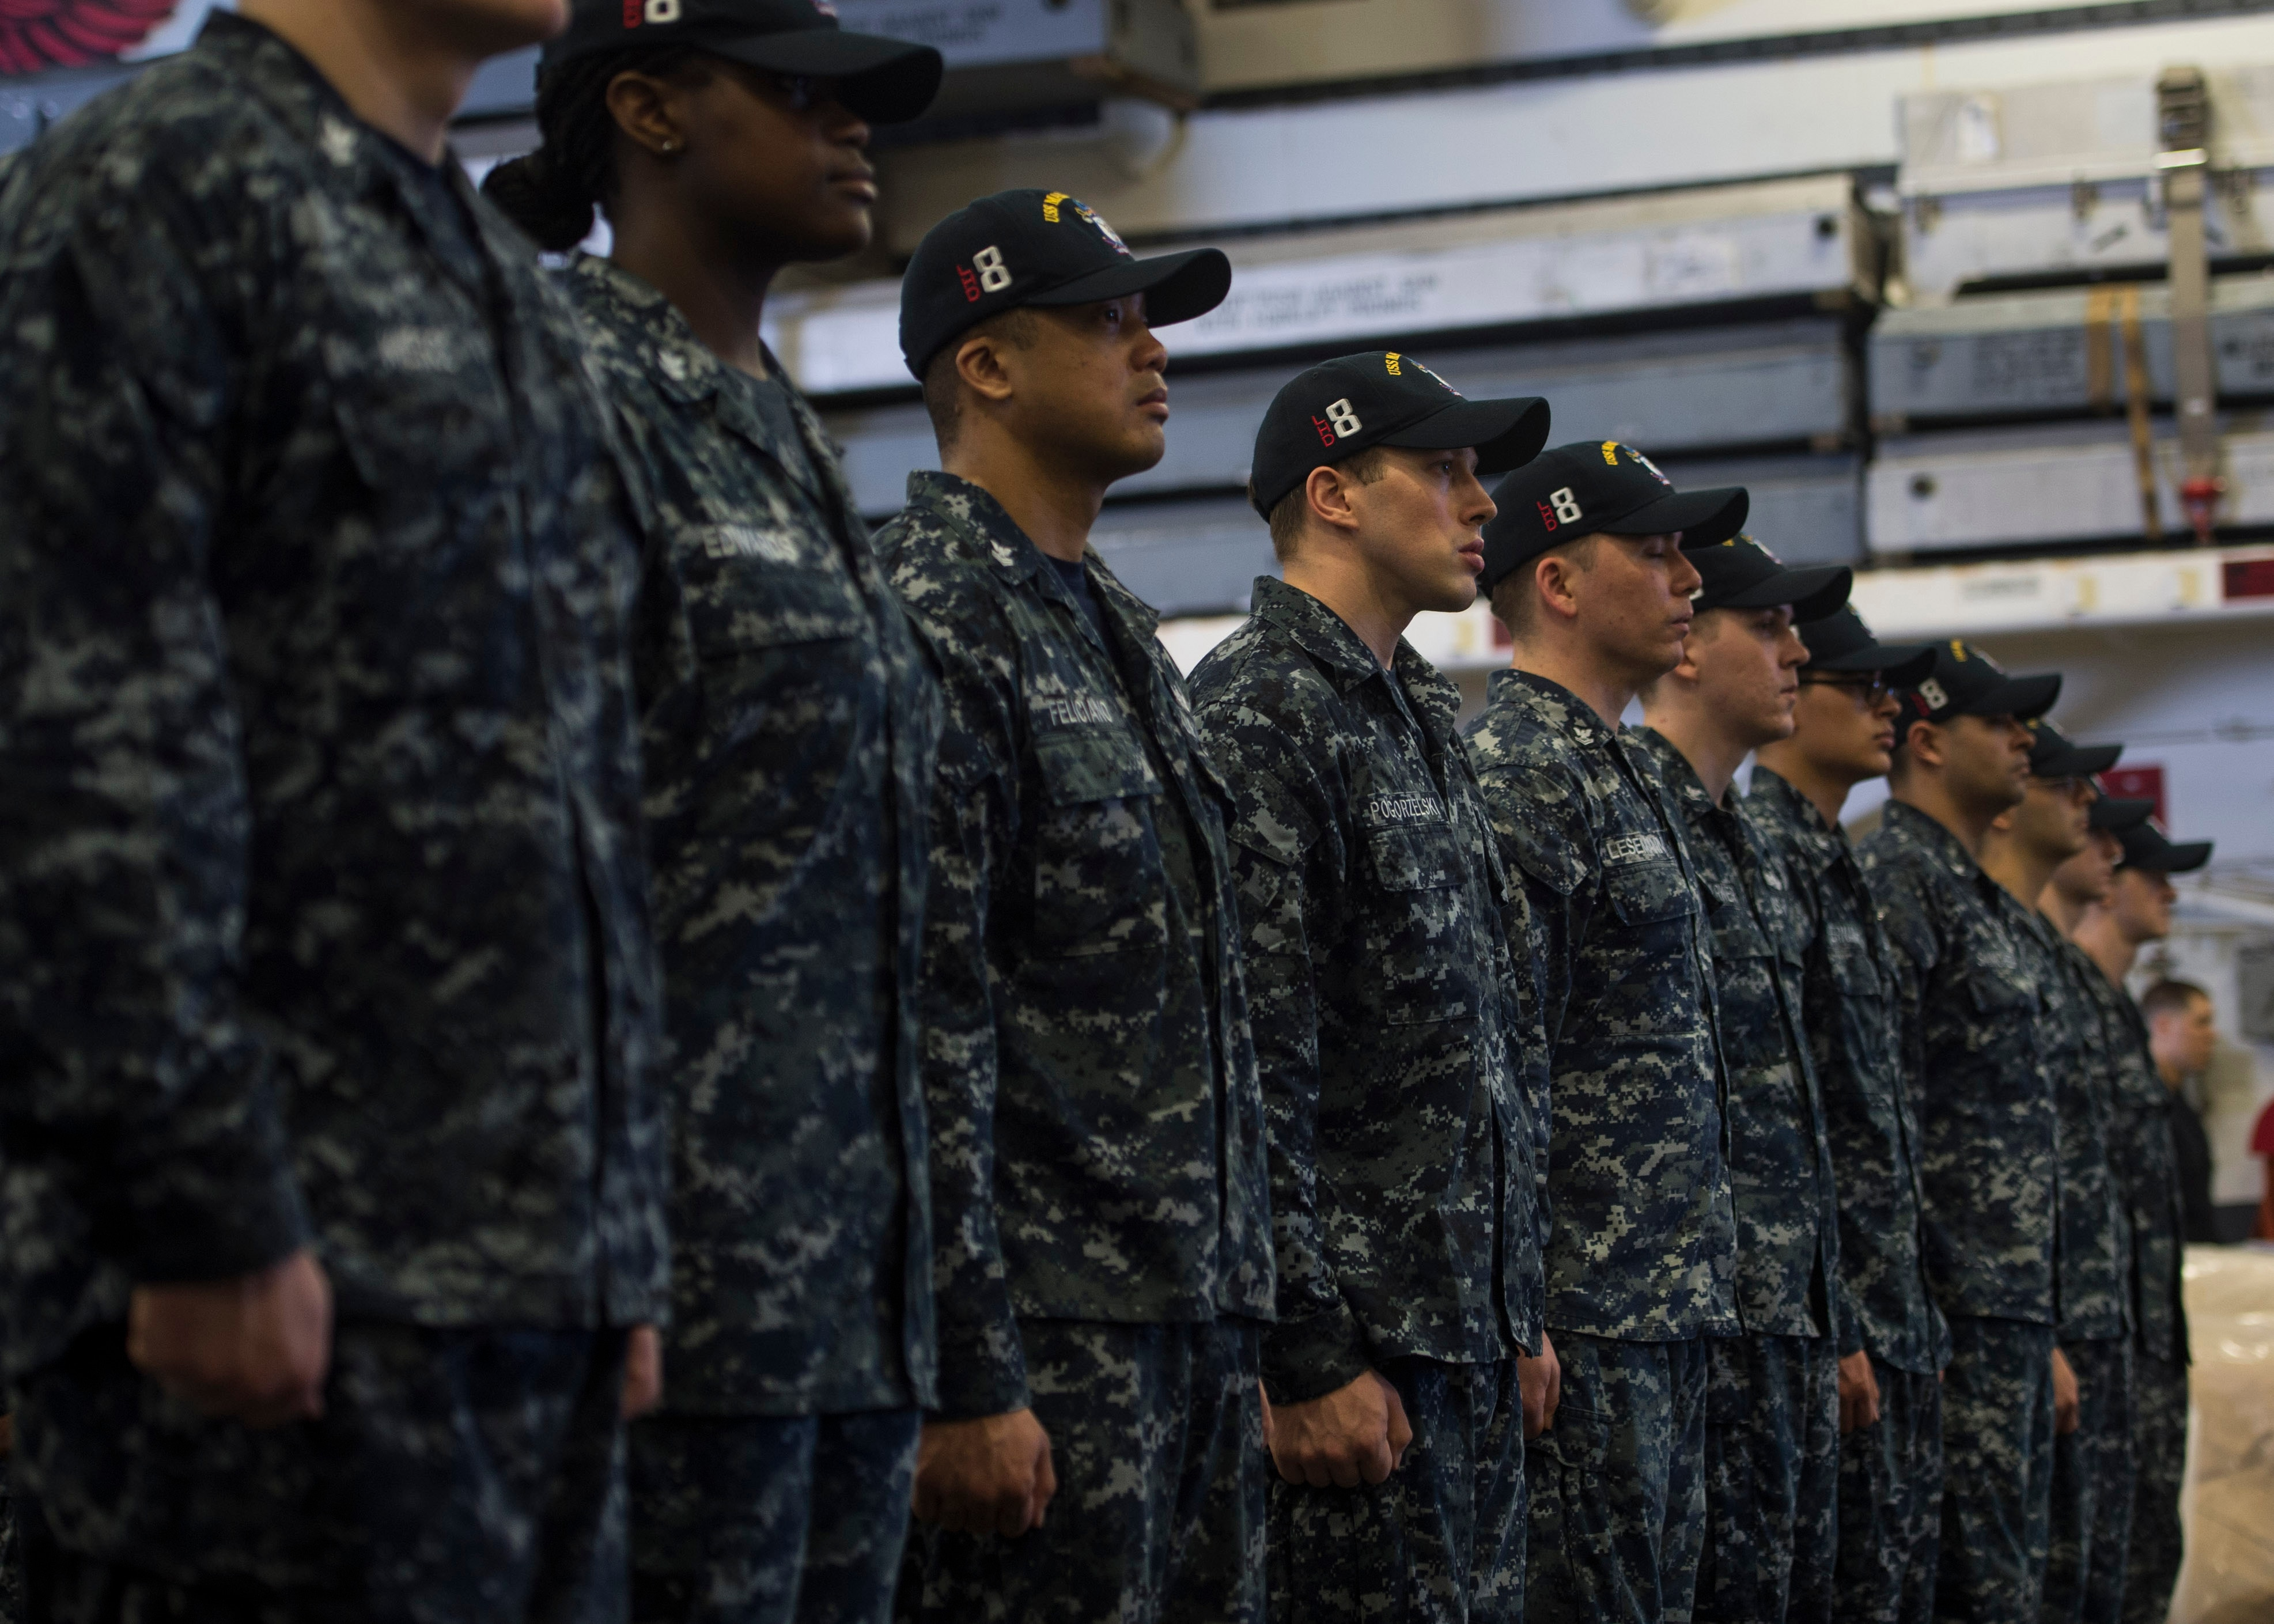 Posting private nude photos is now a crime in the Navy and Marine Corps